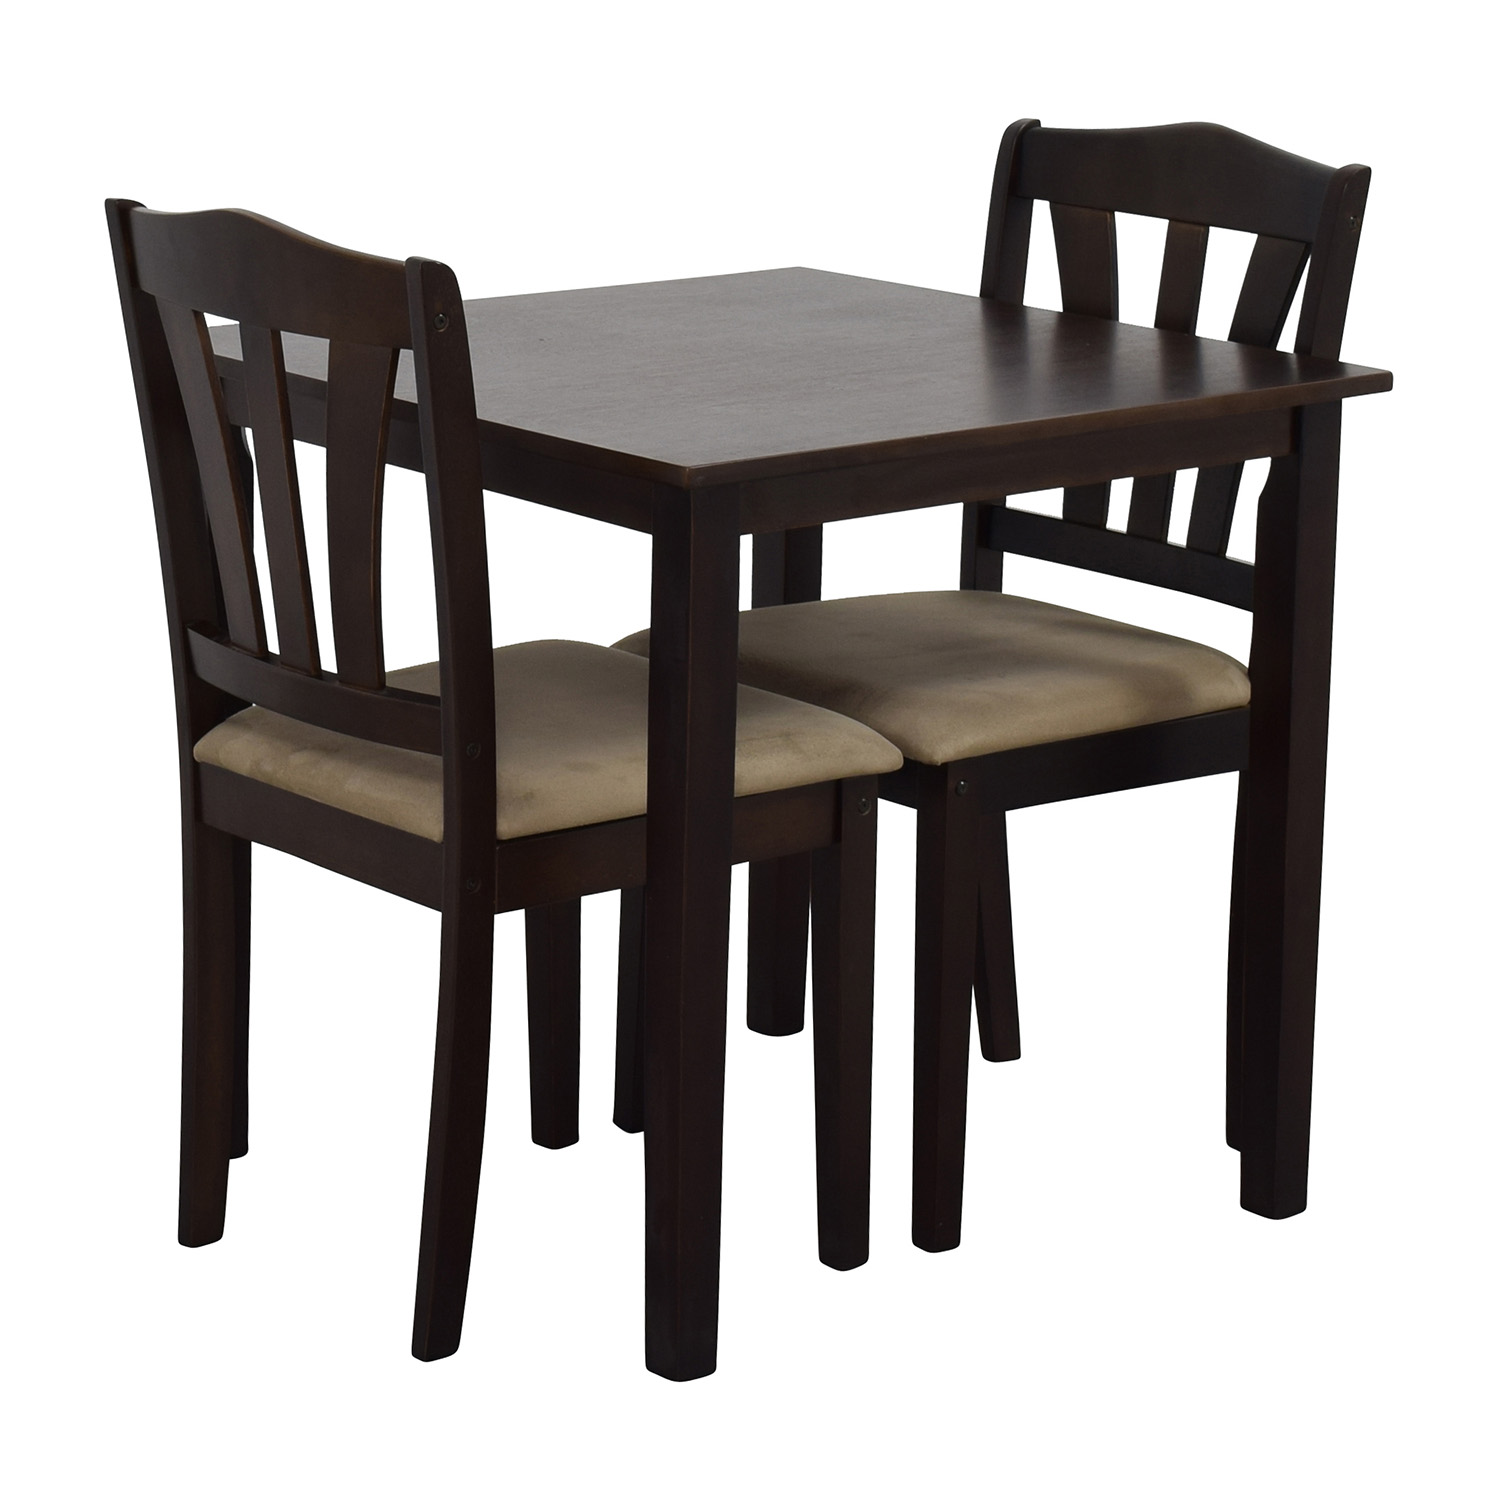 Dining Tables And Chairs: Wood Dining Table And Beige Upholstered Chairs